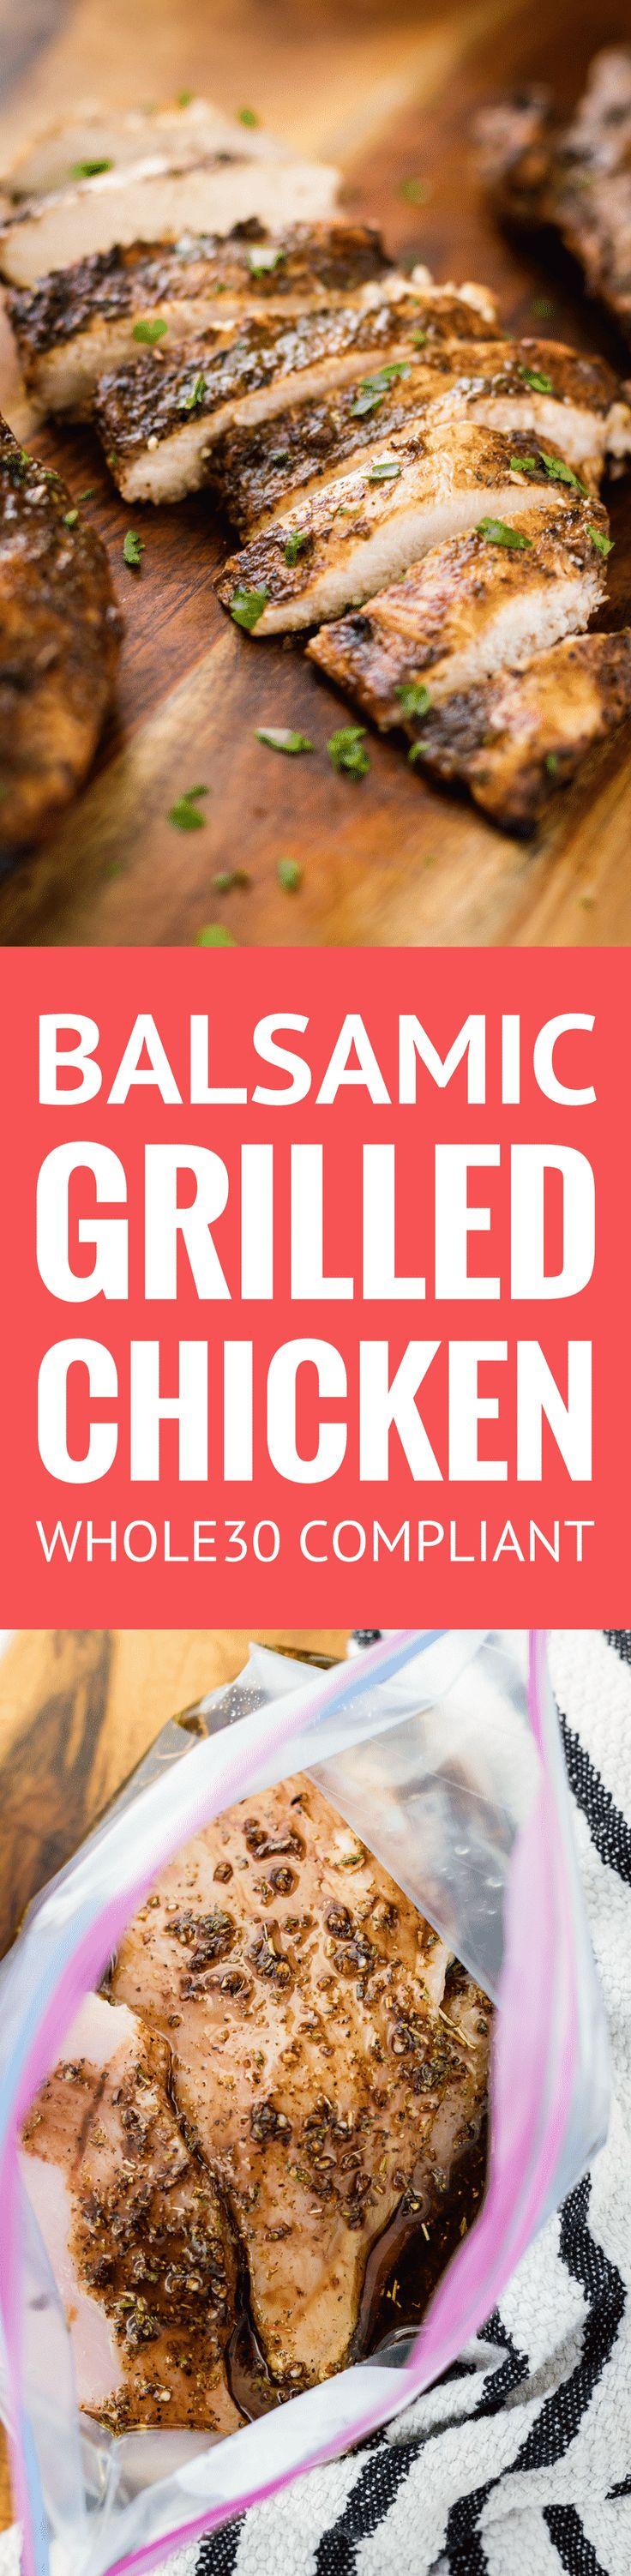 Juicy Balsamic Grilled Chicken -- this balsamic grilled chicken recipe makes the most juicy and succulent boneless skinless breasts EVER with just 4 ingredients and 30 minutes of marinating time! And it's Whole30 compliant… | balsamic grilled chicken marinade | healthy balsamic grilled chicken | whole30 balsamic grilled chicken | find the recipe on unsophisticook.com